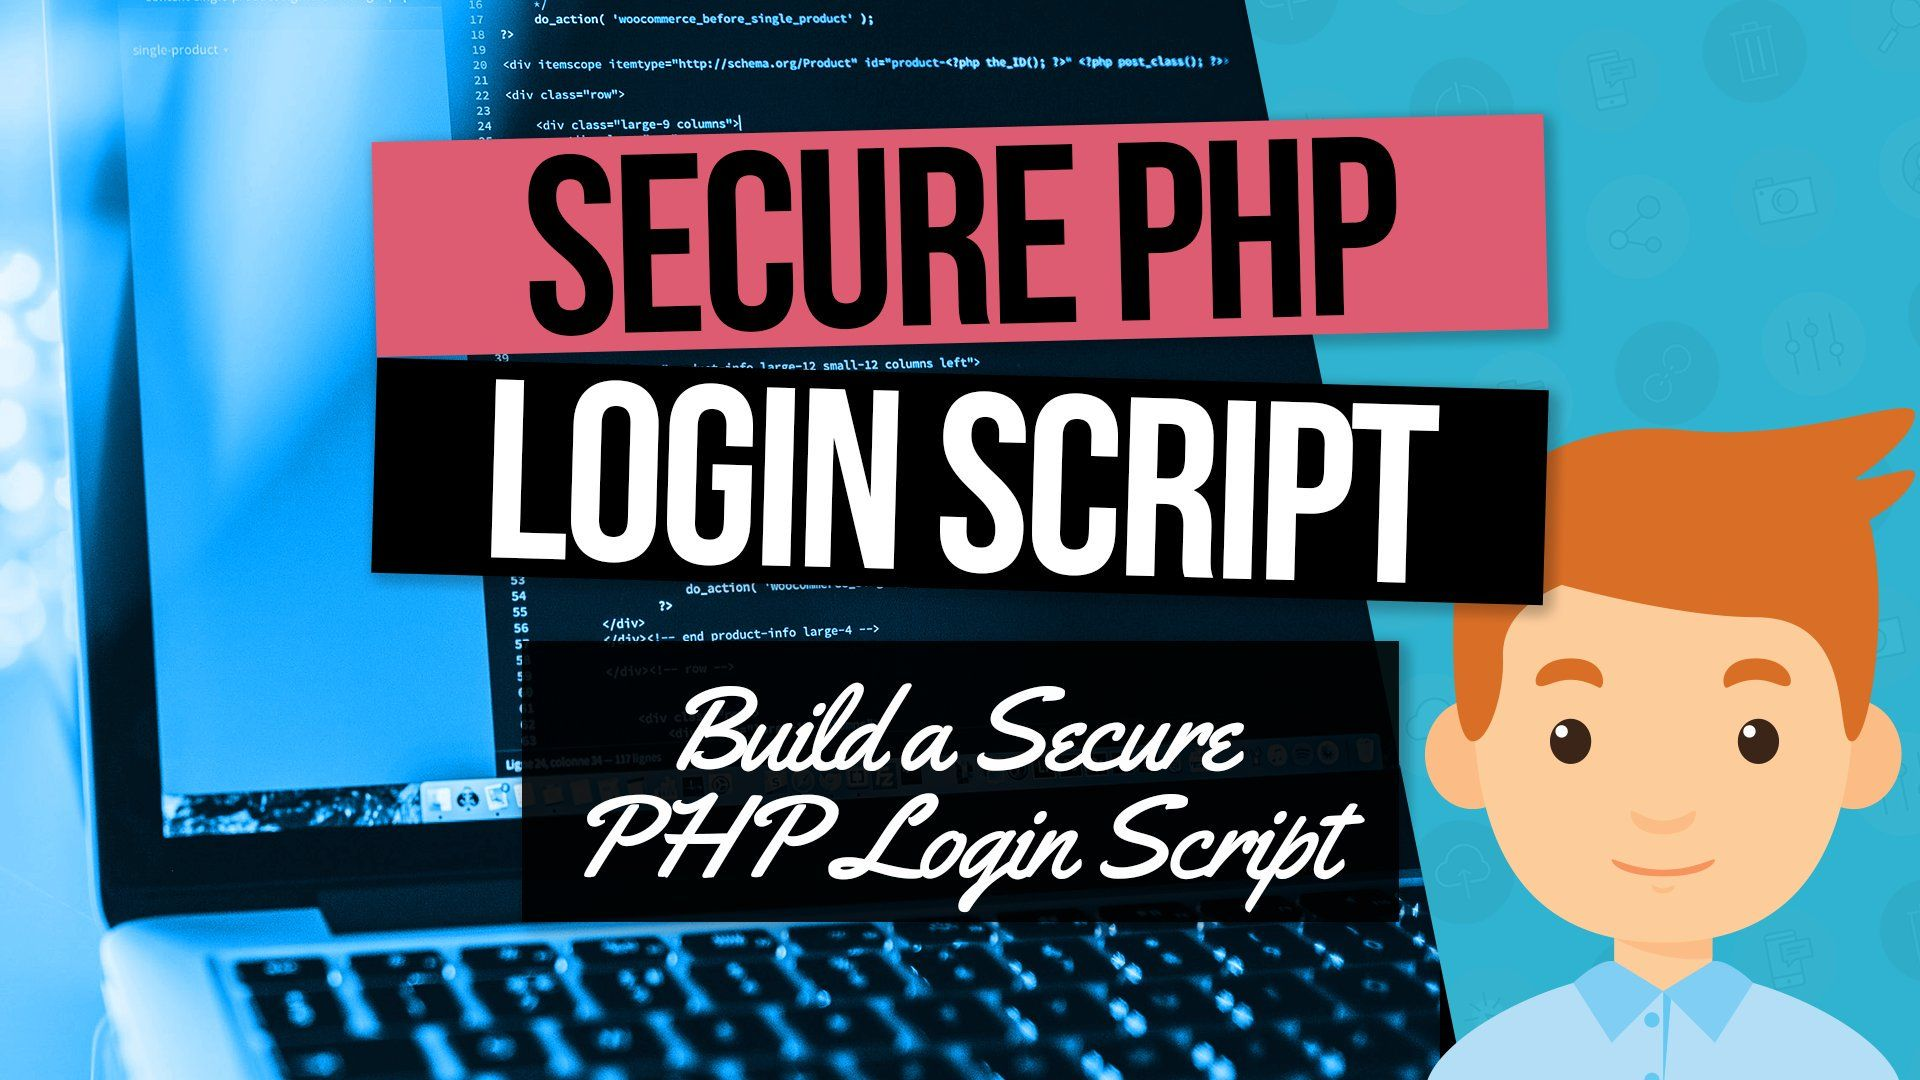 You'll learn how to create a secure, sessionbased login